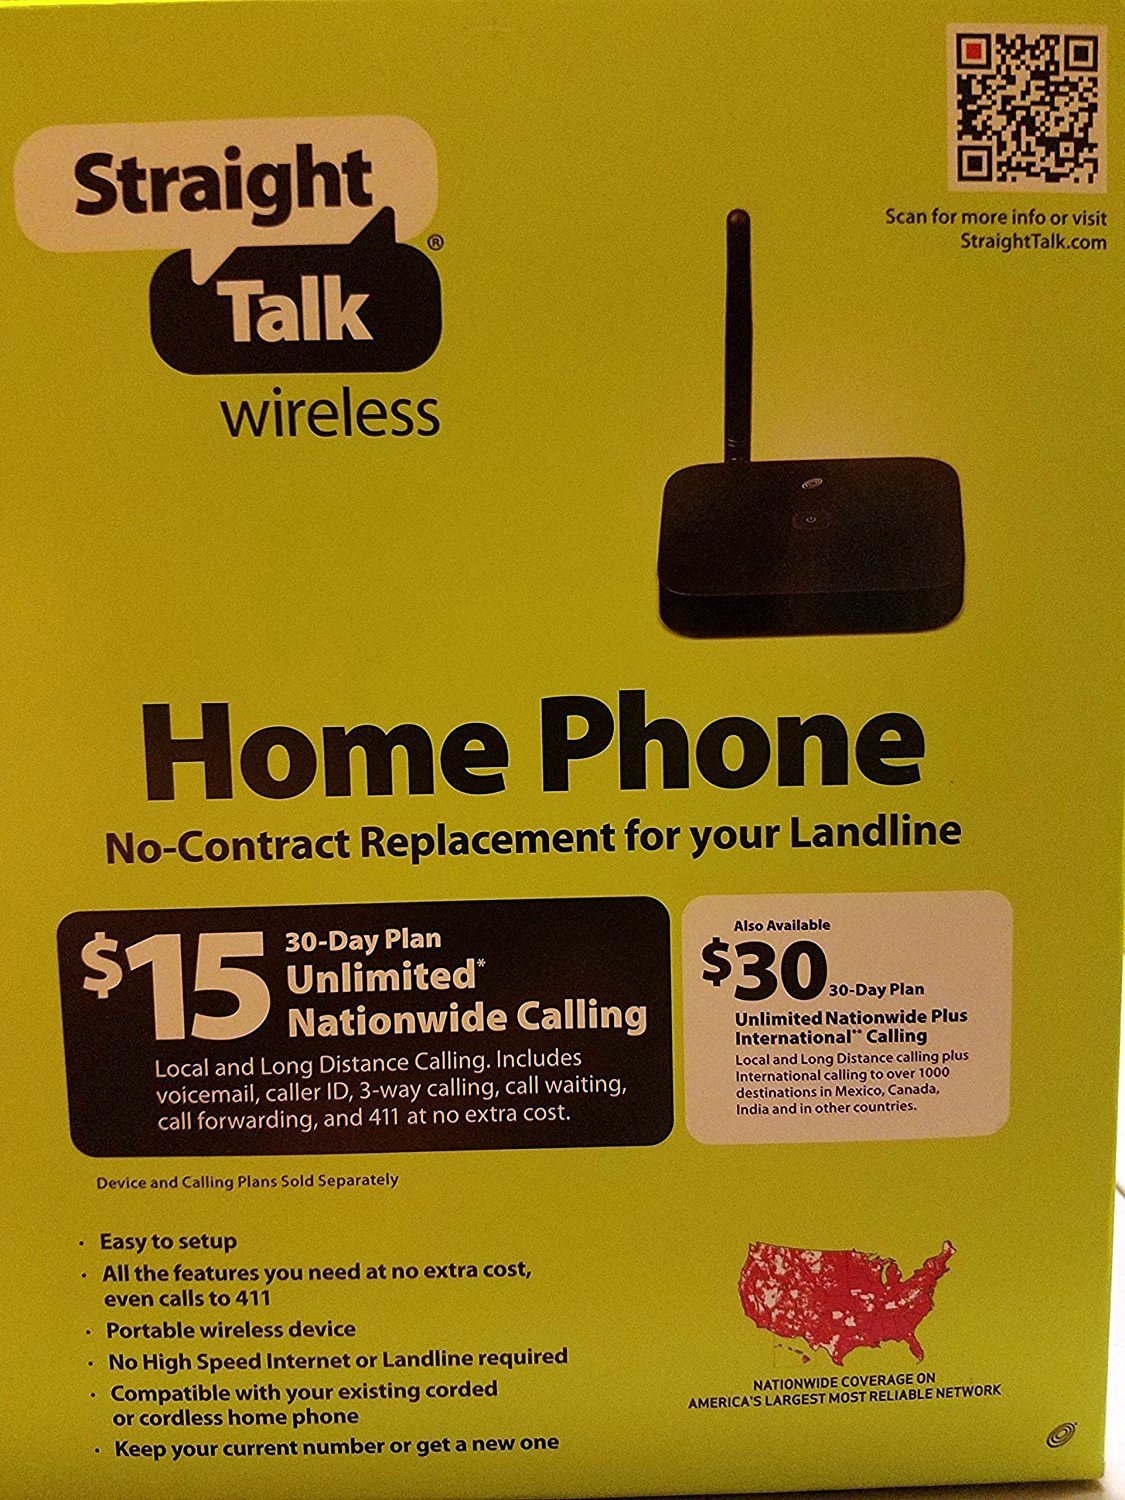 amazoncom straight talk wireless home phone no contract replacement for landline cell phones accessories - Prepaid Long Distance Phone Cards For Landlines